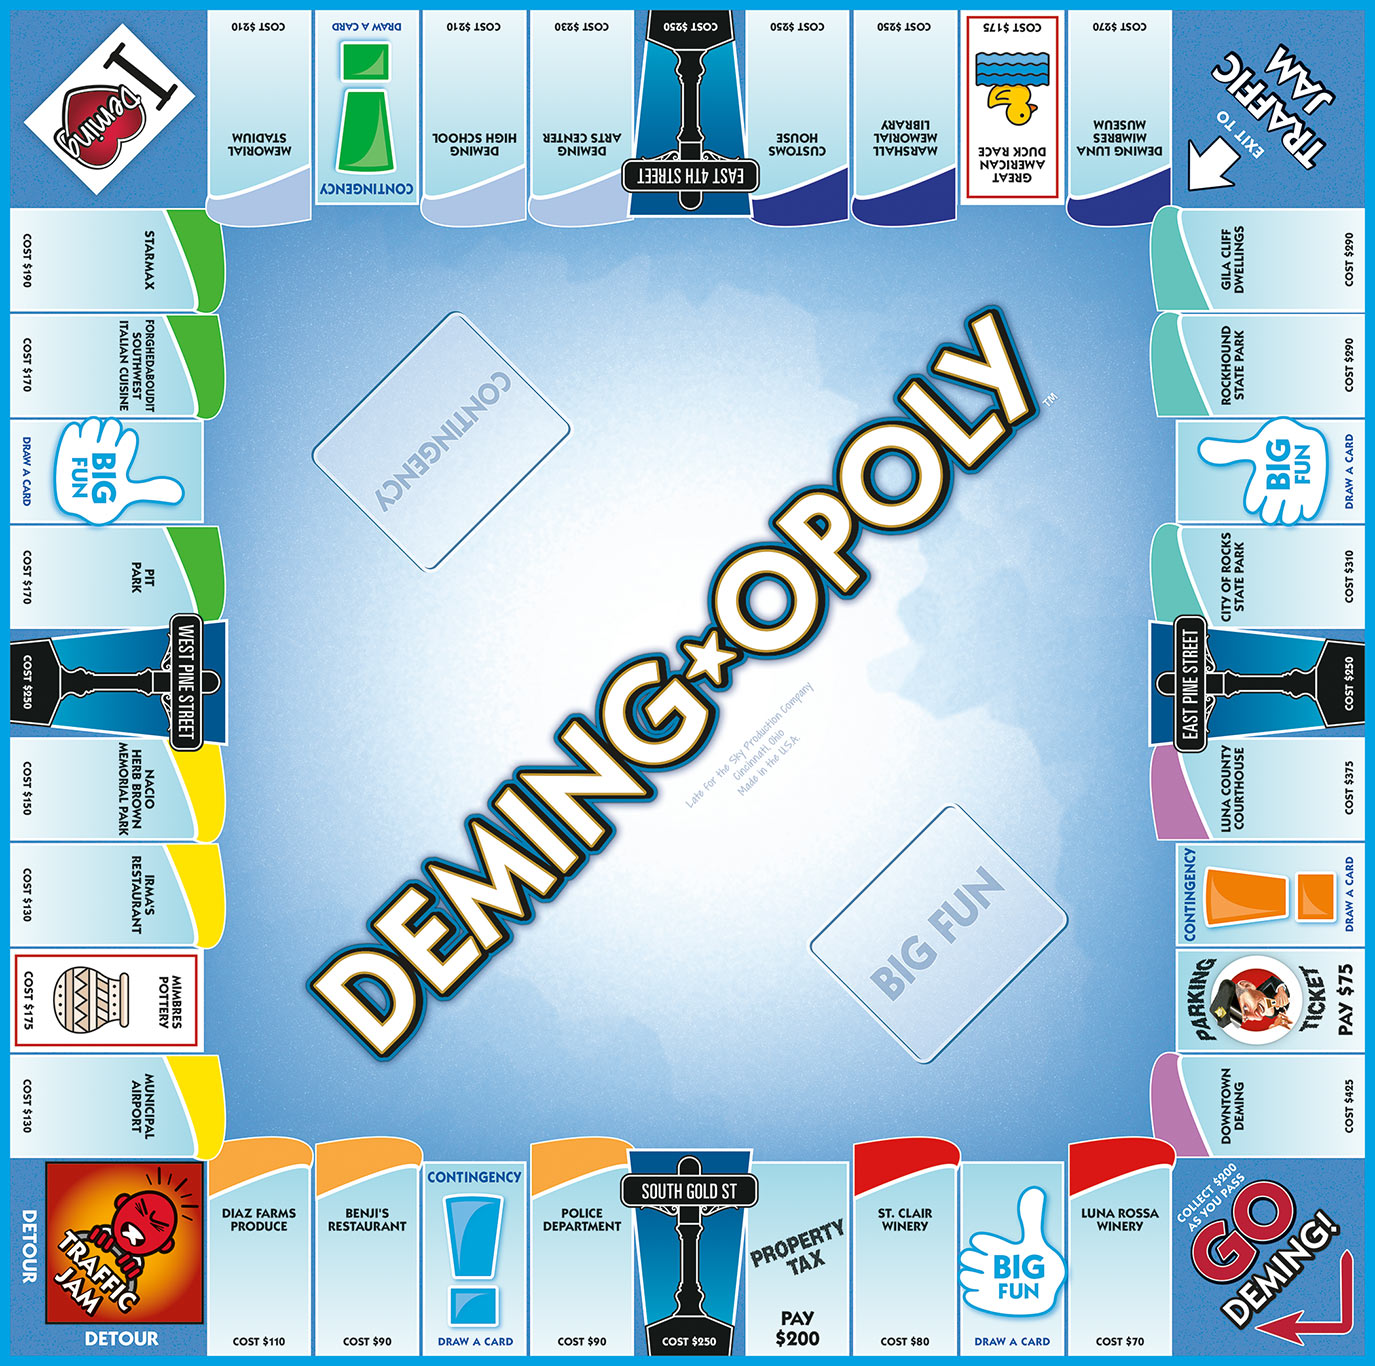 DEMING-OPOLY Board Game